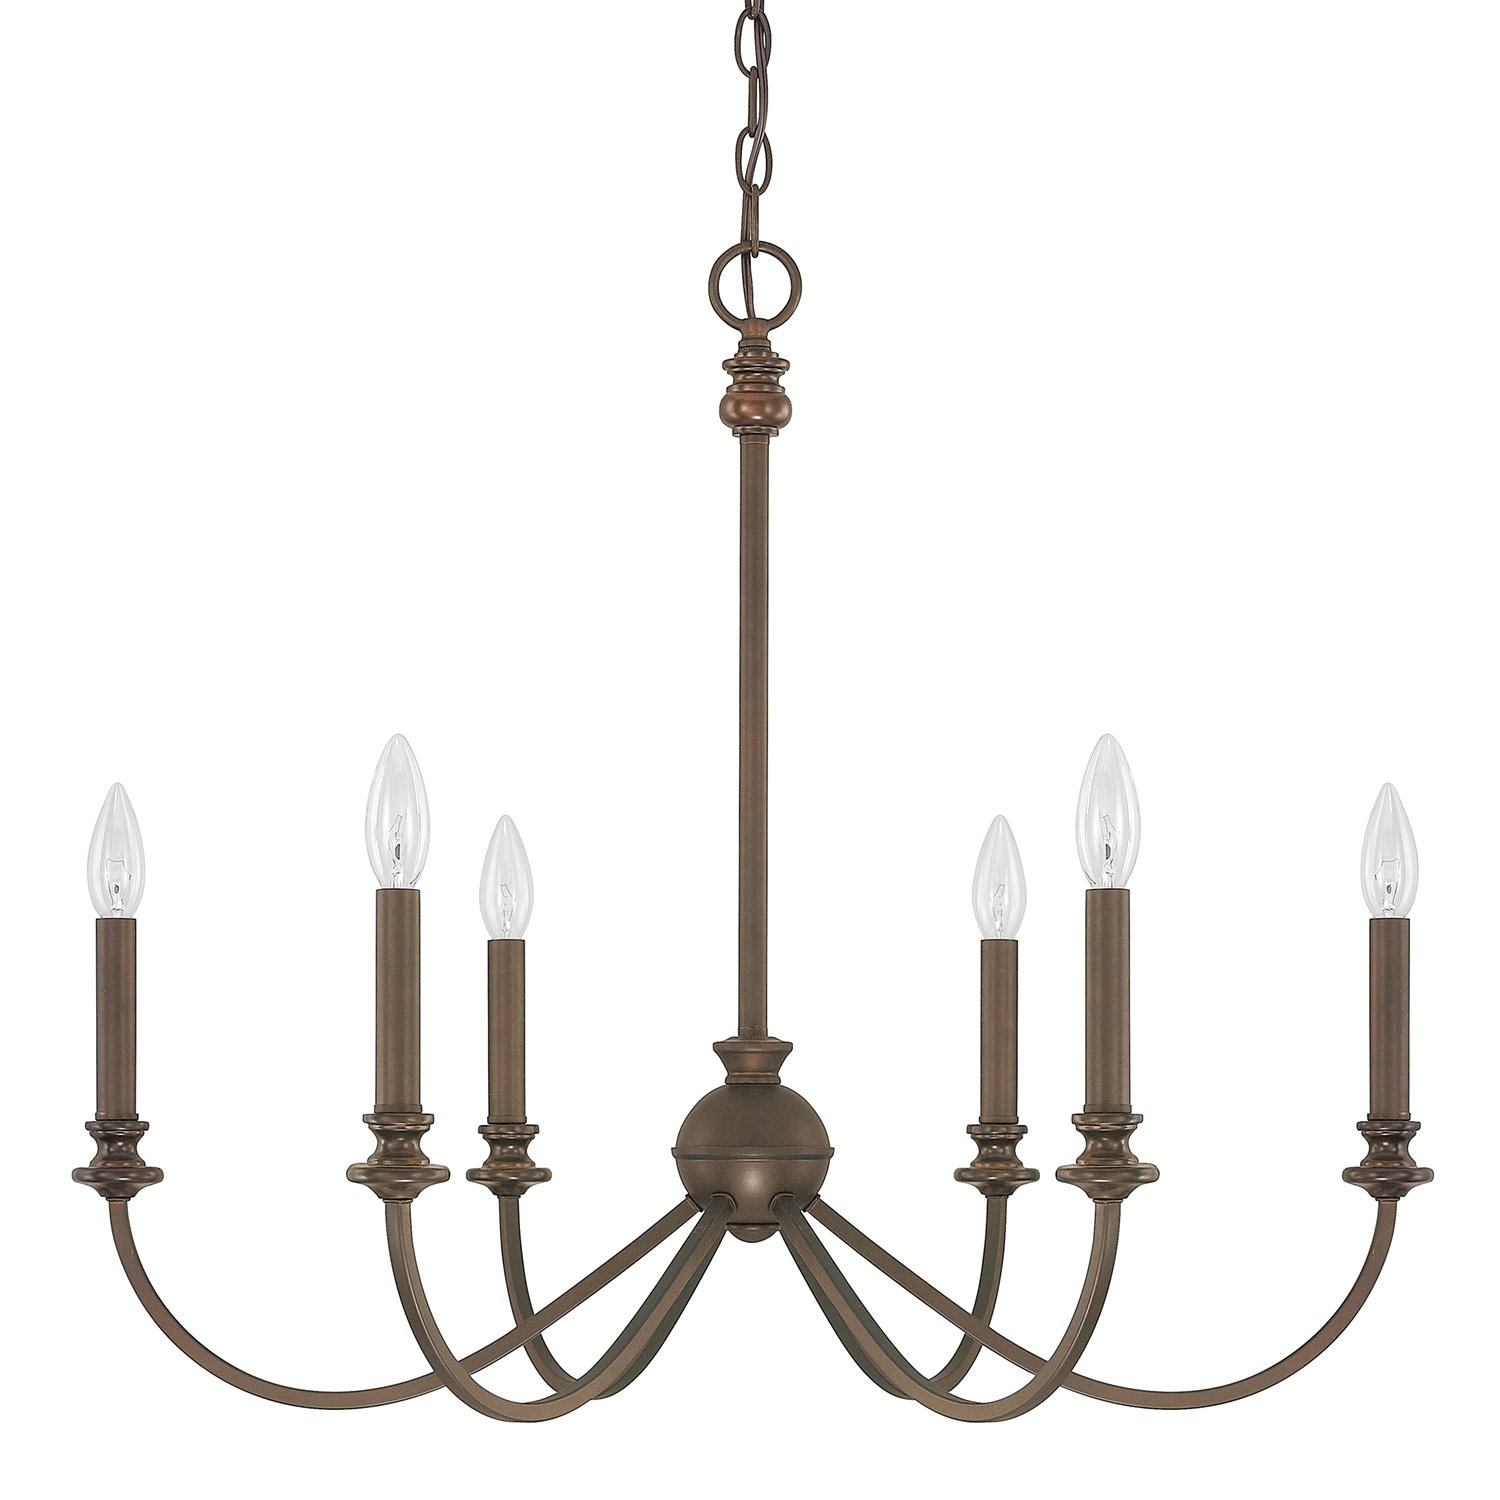 Donny Osmond Alexander 6 Light Candle Style Chandelier Reviews Within Candle Light Chandelier (View 5 of 15)